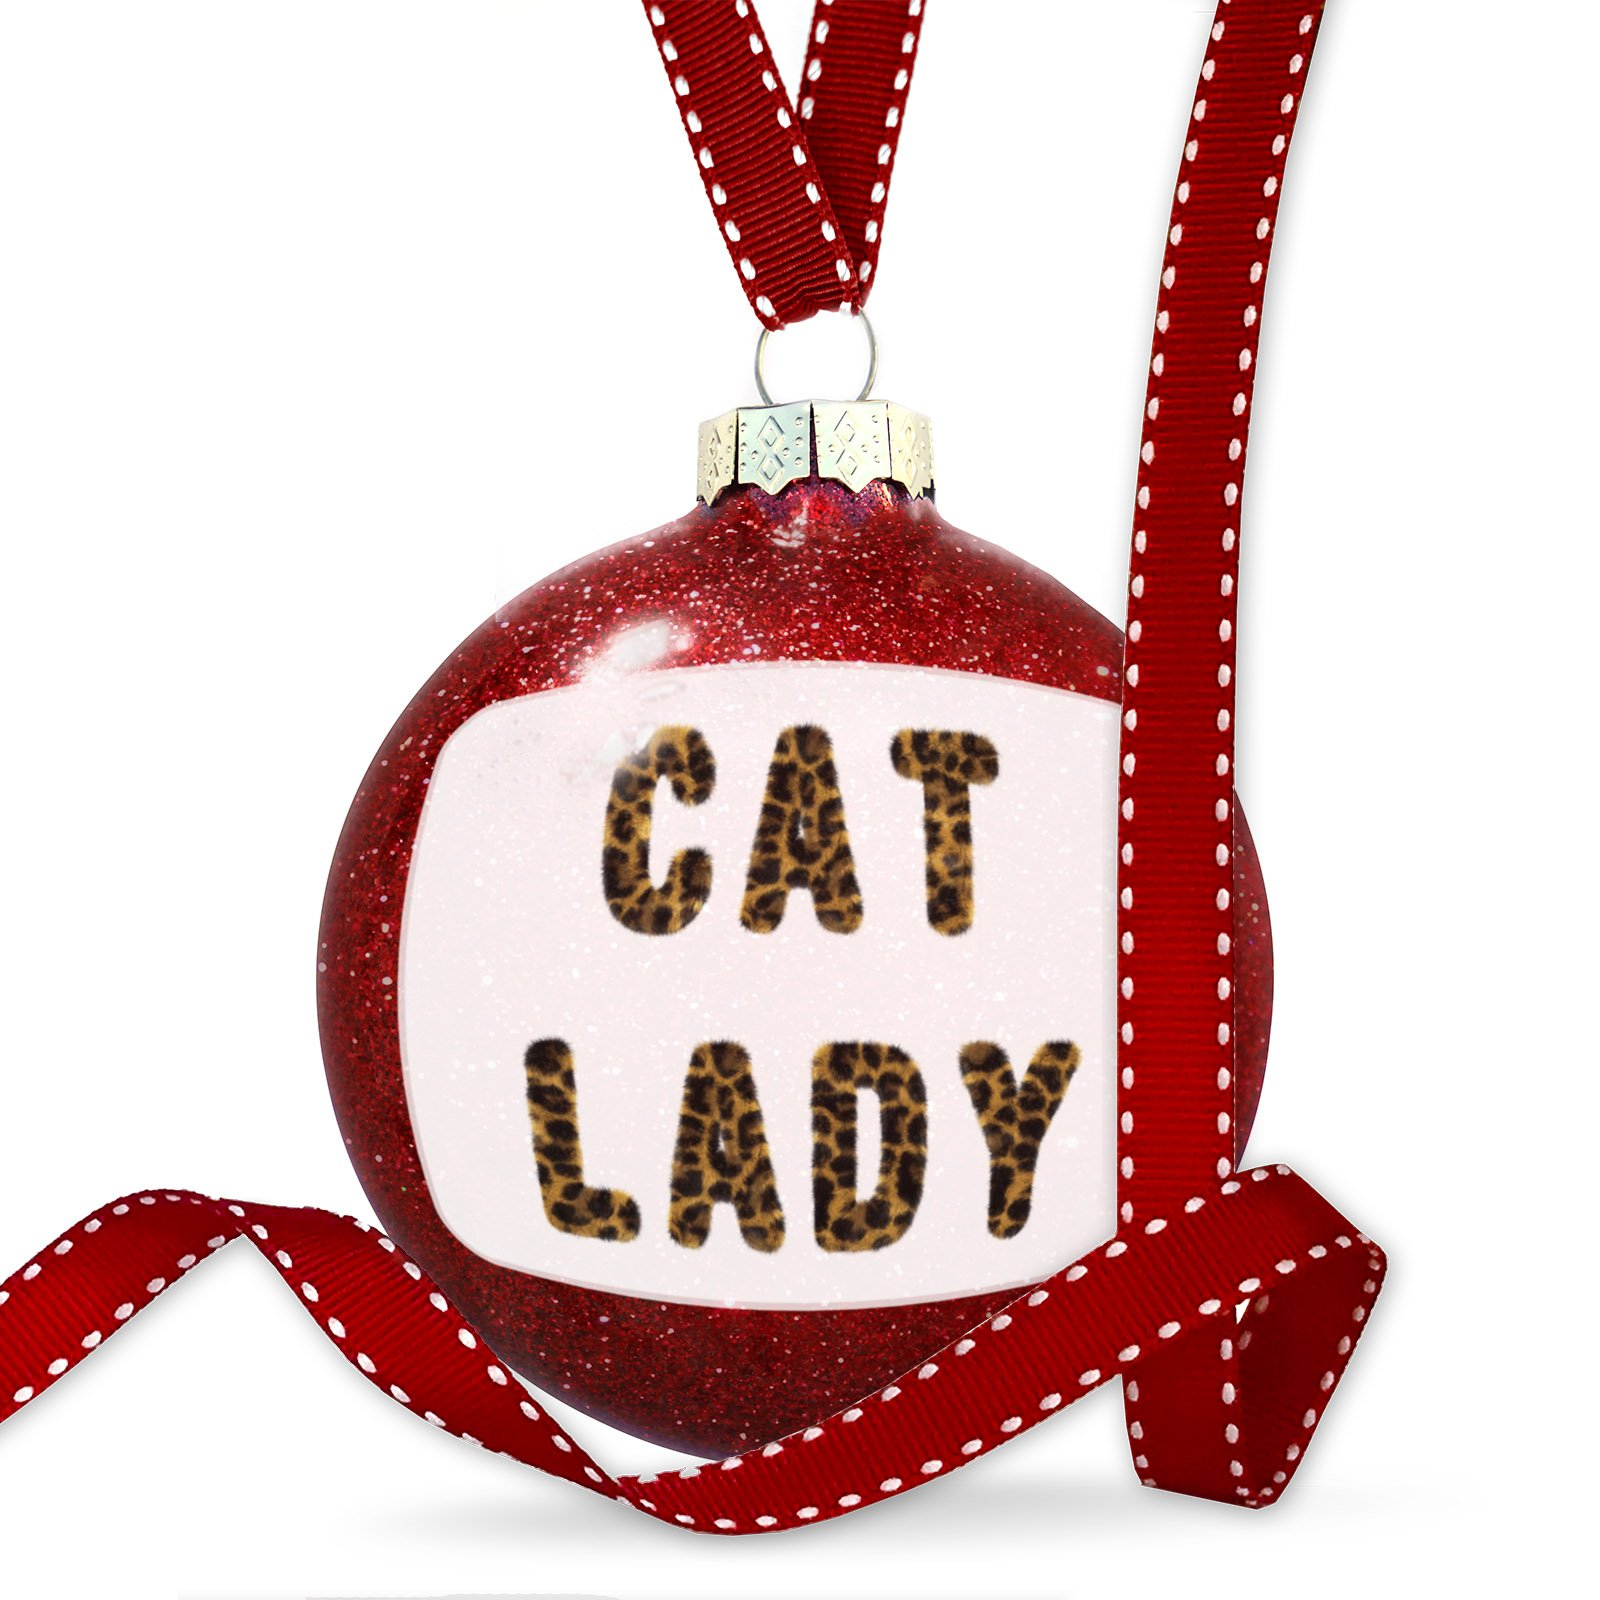 Christmas Decoration Cat Lady Cheetah Cat Animal Print Ornament by NEONBLOND (Image #1)